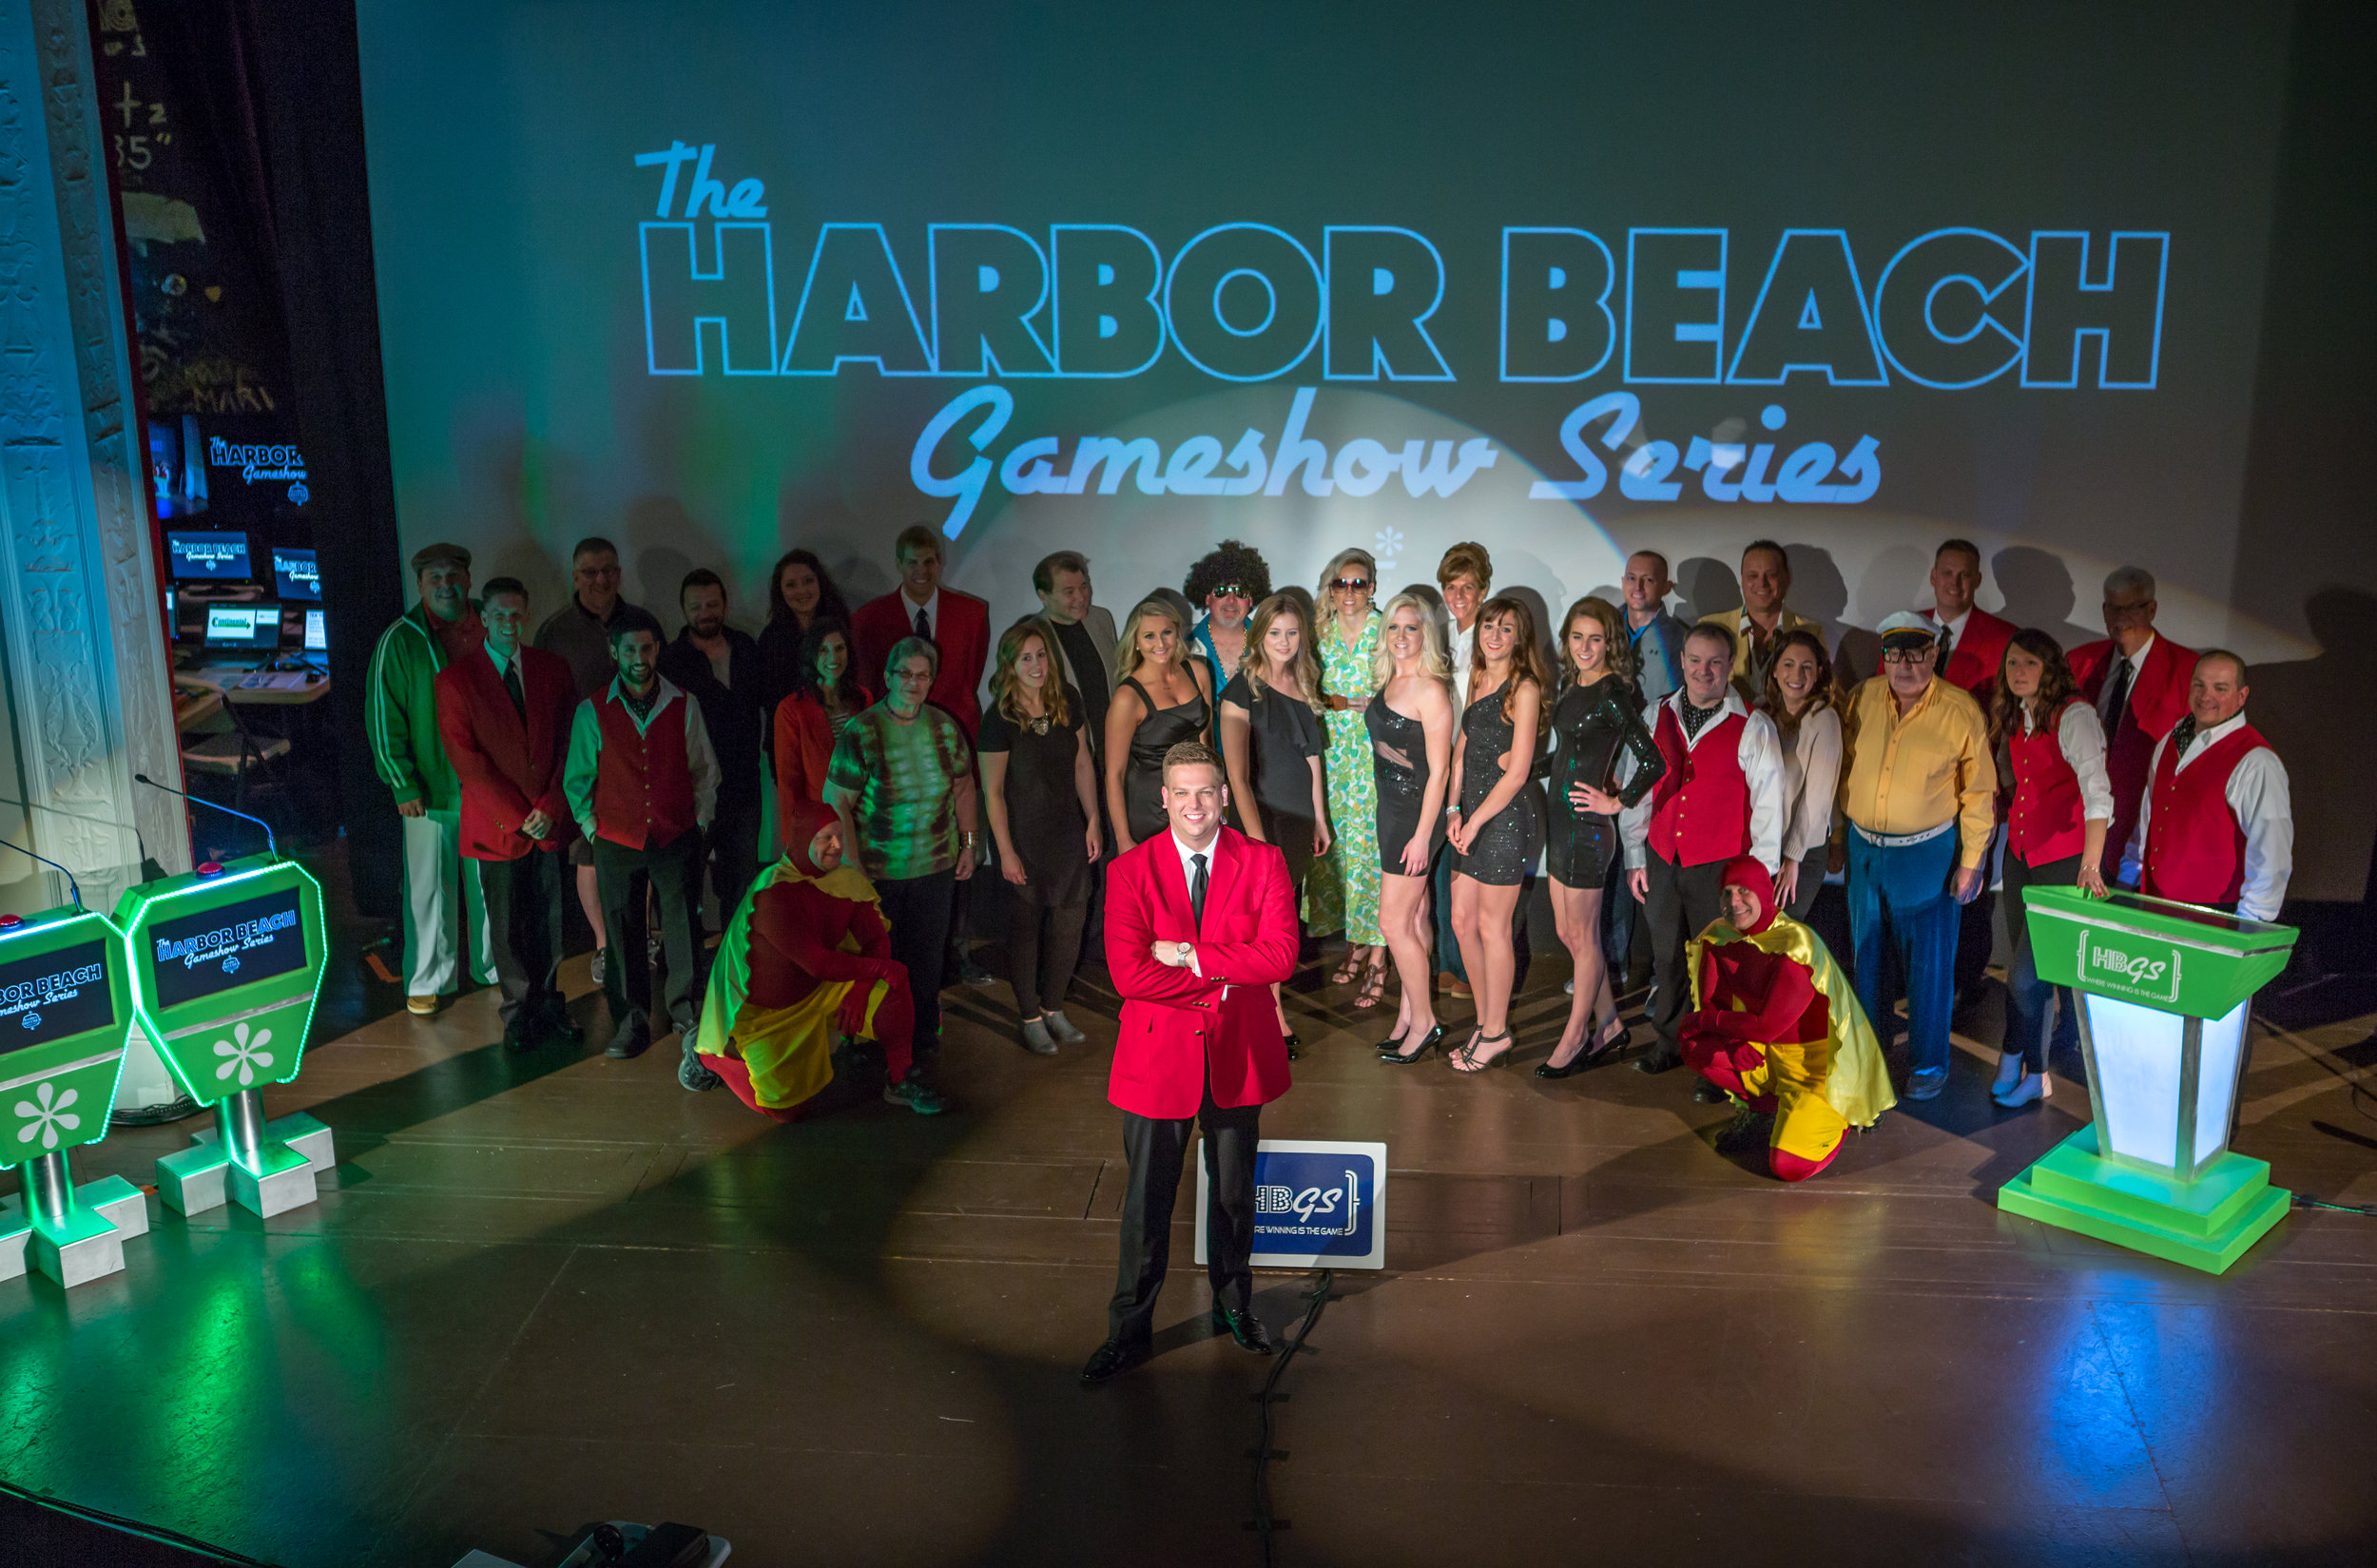 A majority of the staff of The Harbor Beach Gameshow Series, May 13, 2017 -- not pictured are box office, engineering and usher staff. Photo courtesy of: jenniferGRACE PHOTOGRAPHY